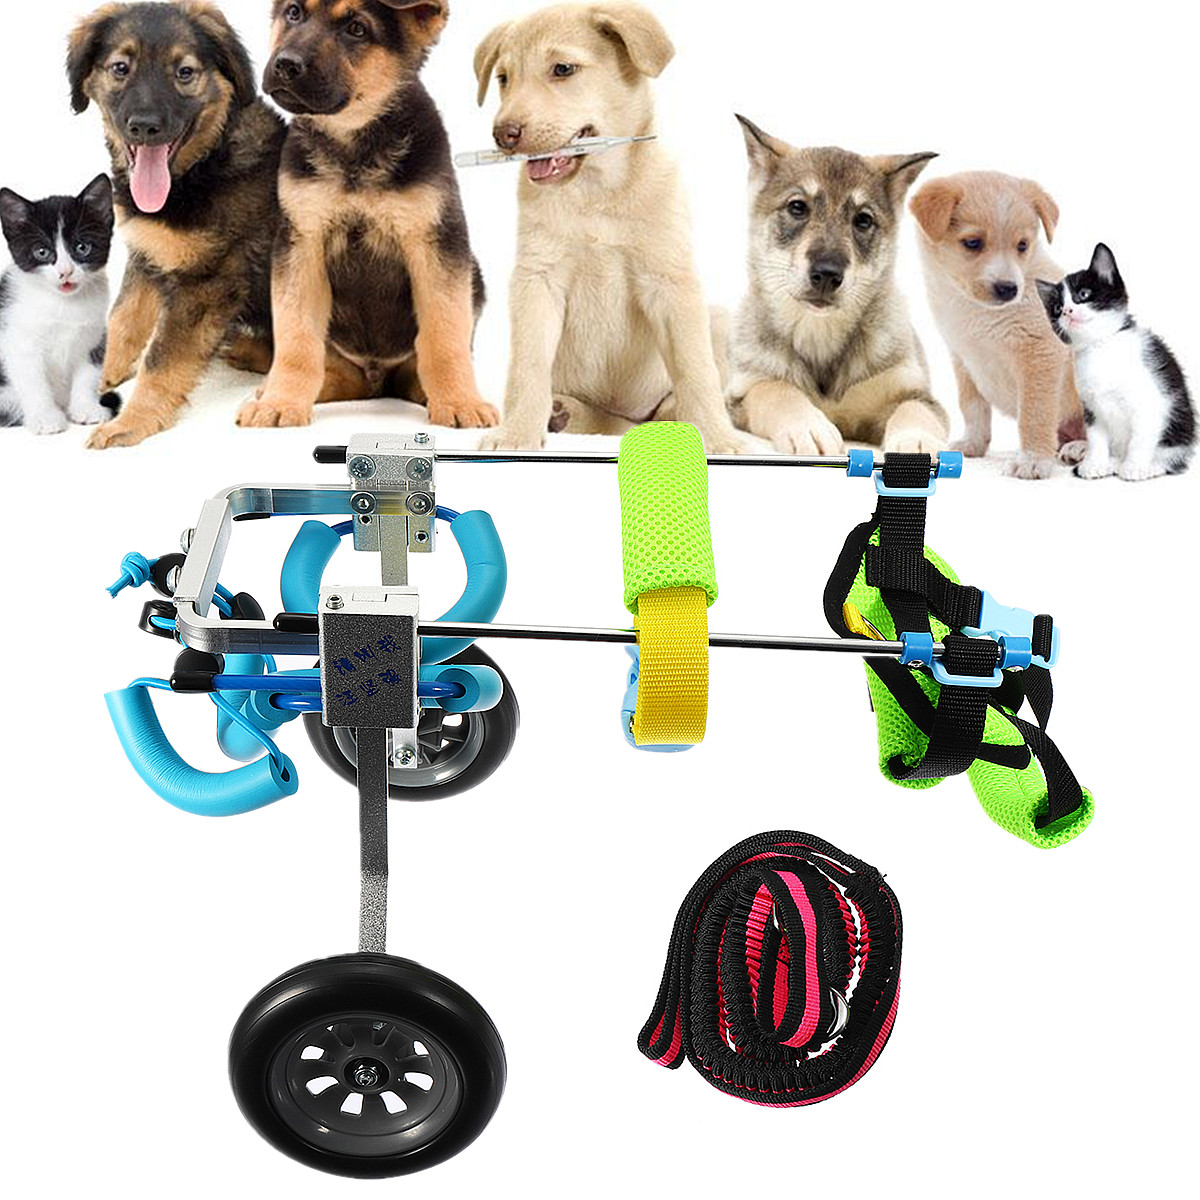 Pet Wheelchair Walk Accessories Traction Rope Cart Kit For Handicapped Cat  Dog Doggie Puppy Light Portable Adjusted Taken Apart